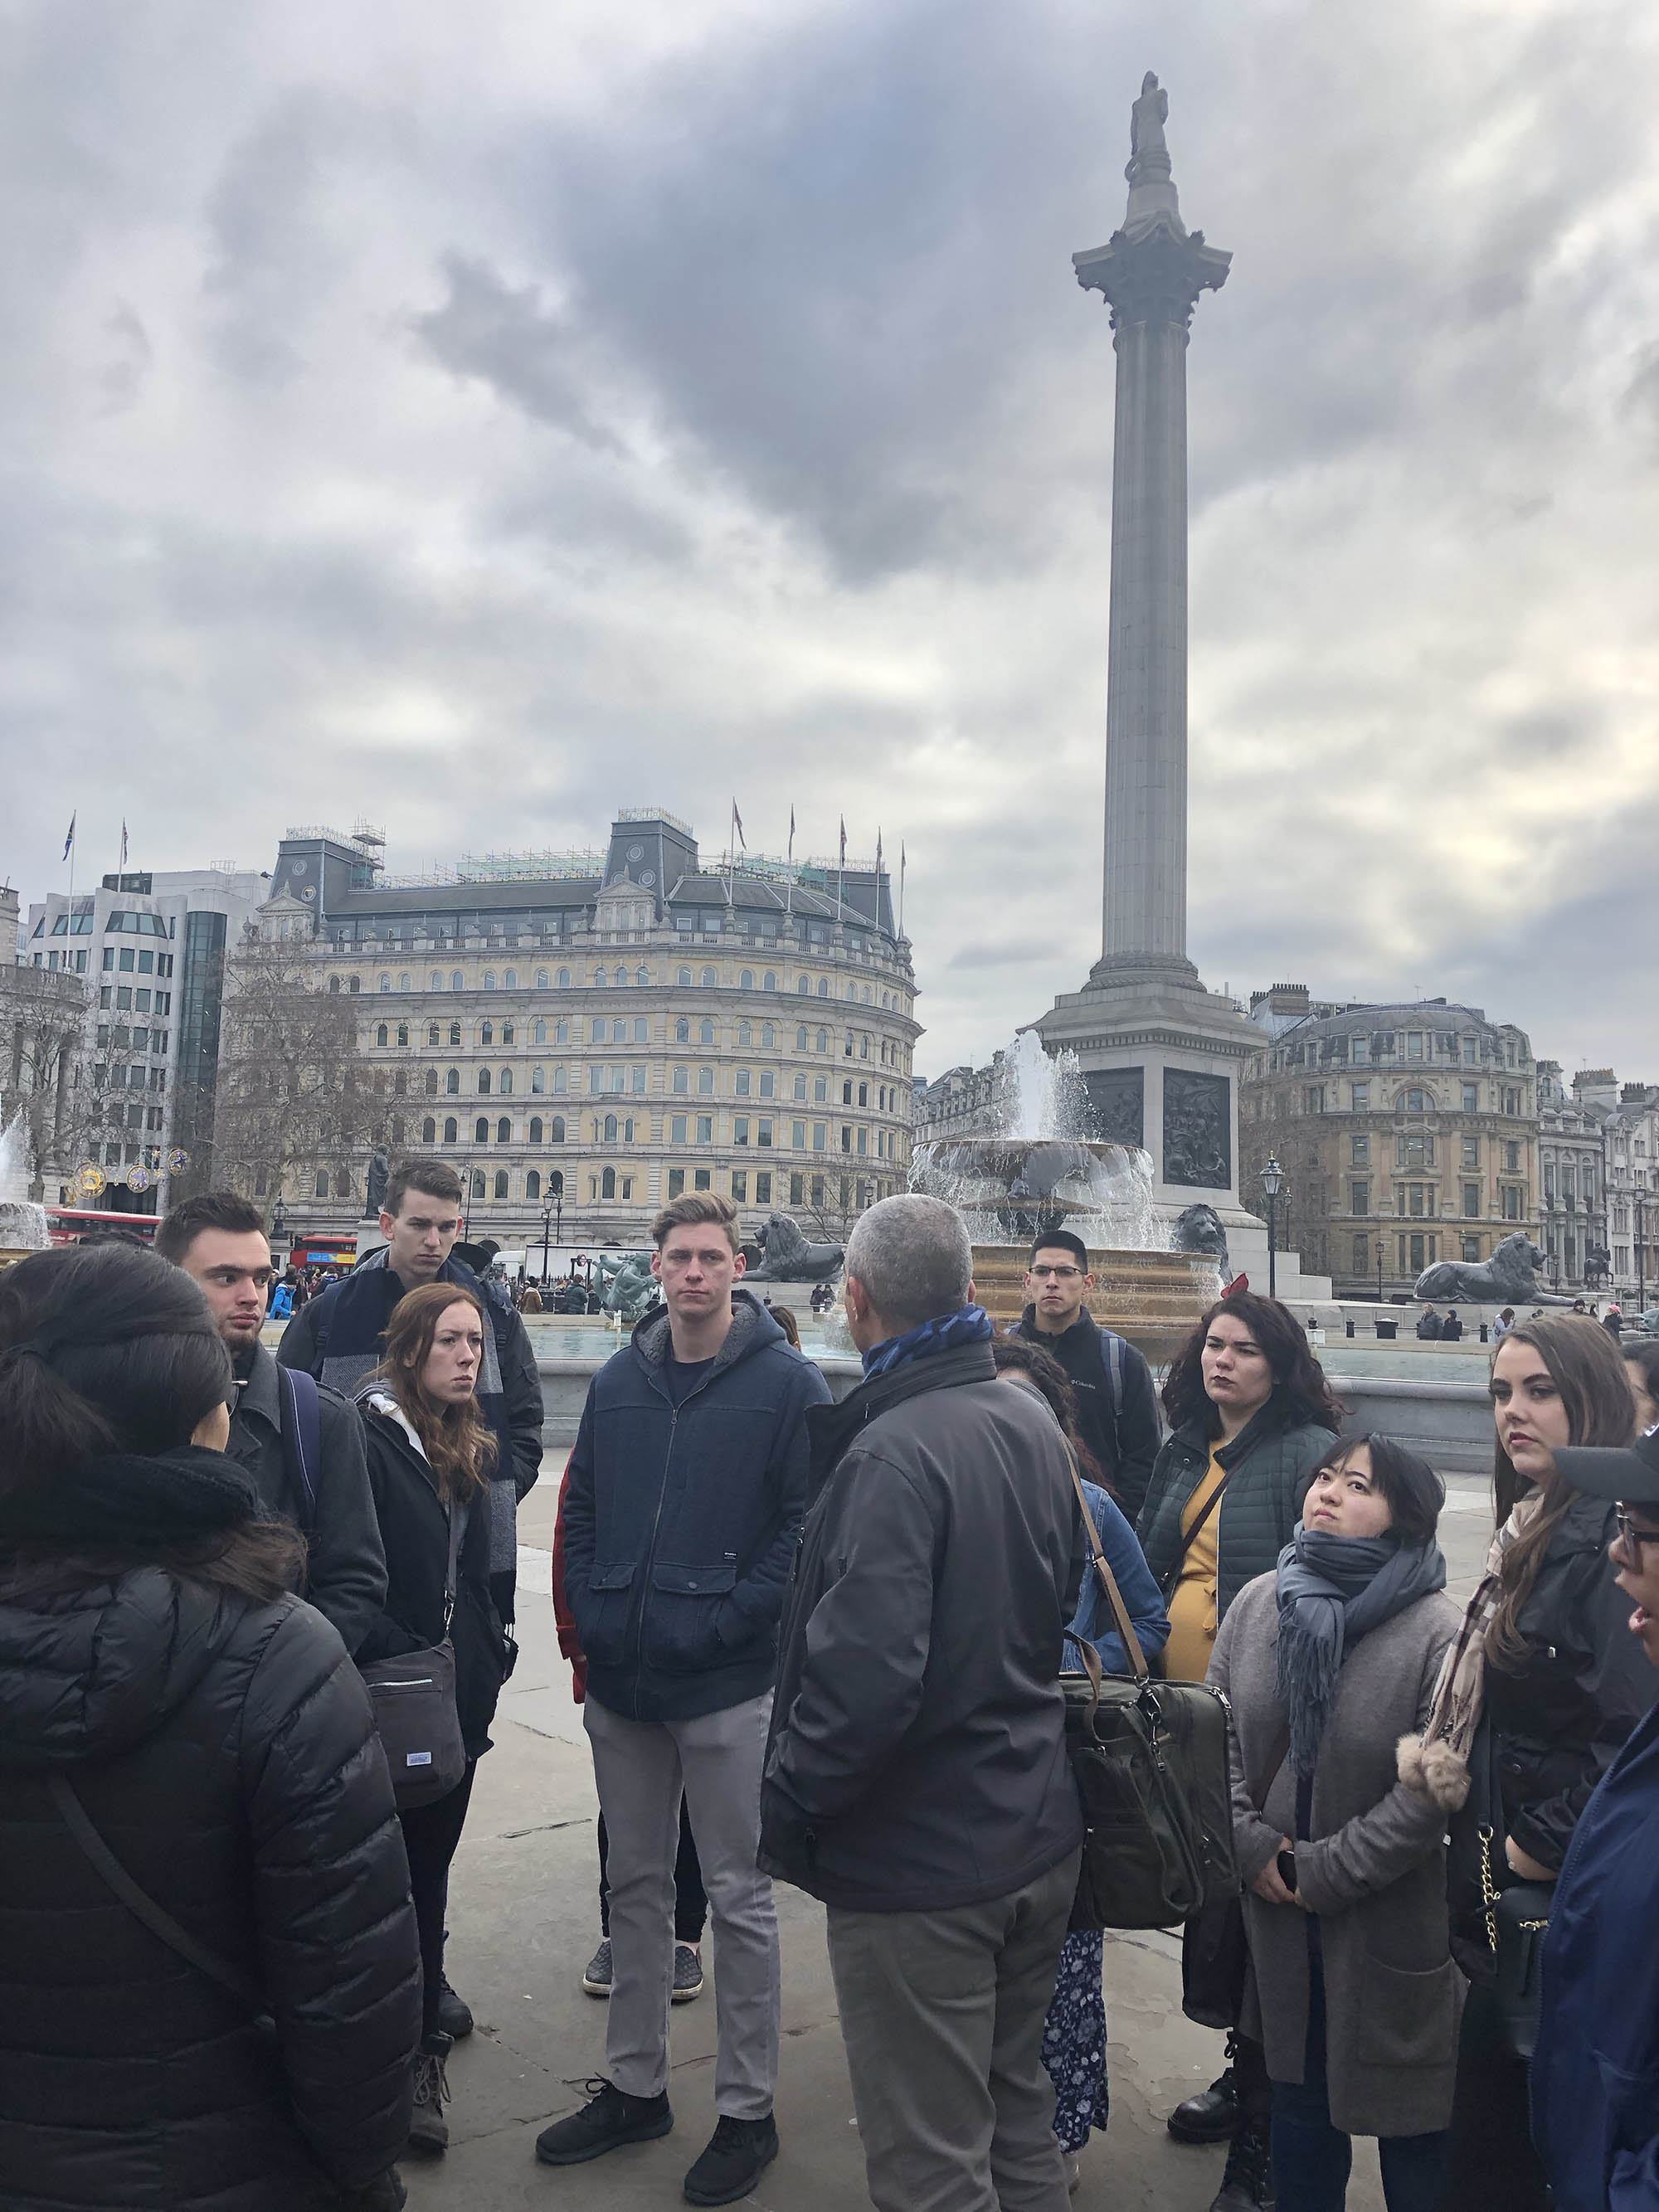 Professor Potter prepares students for what they will see in the National Gallery in Trafalgar Square below the Nelson Monument.